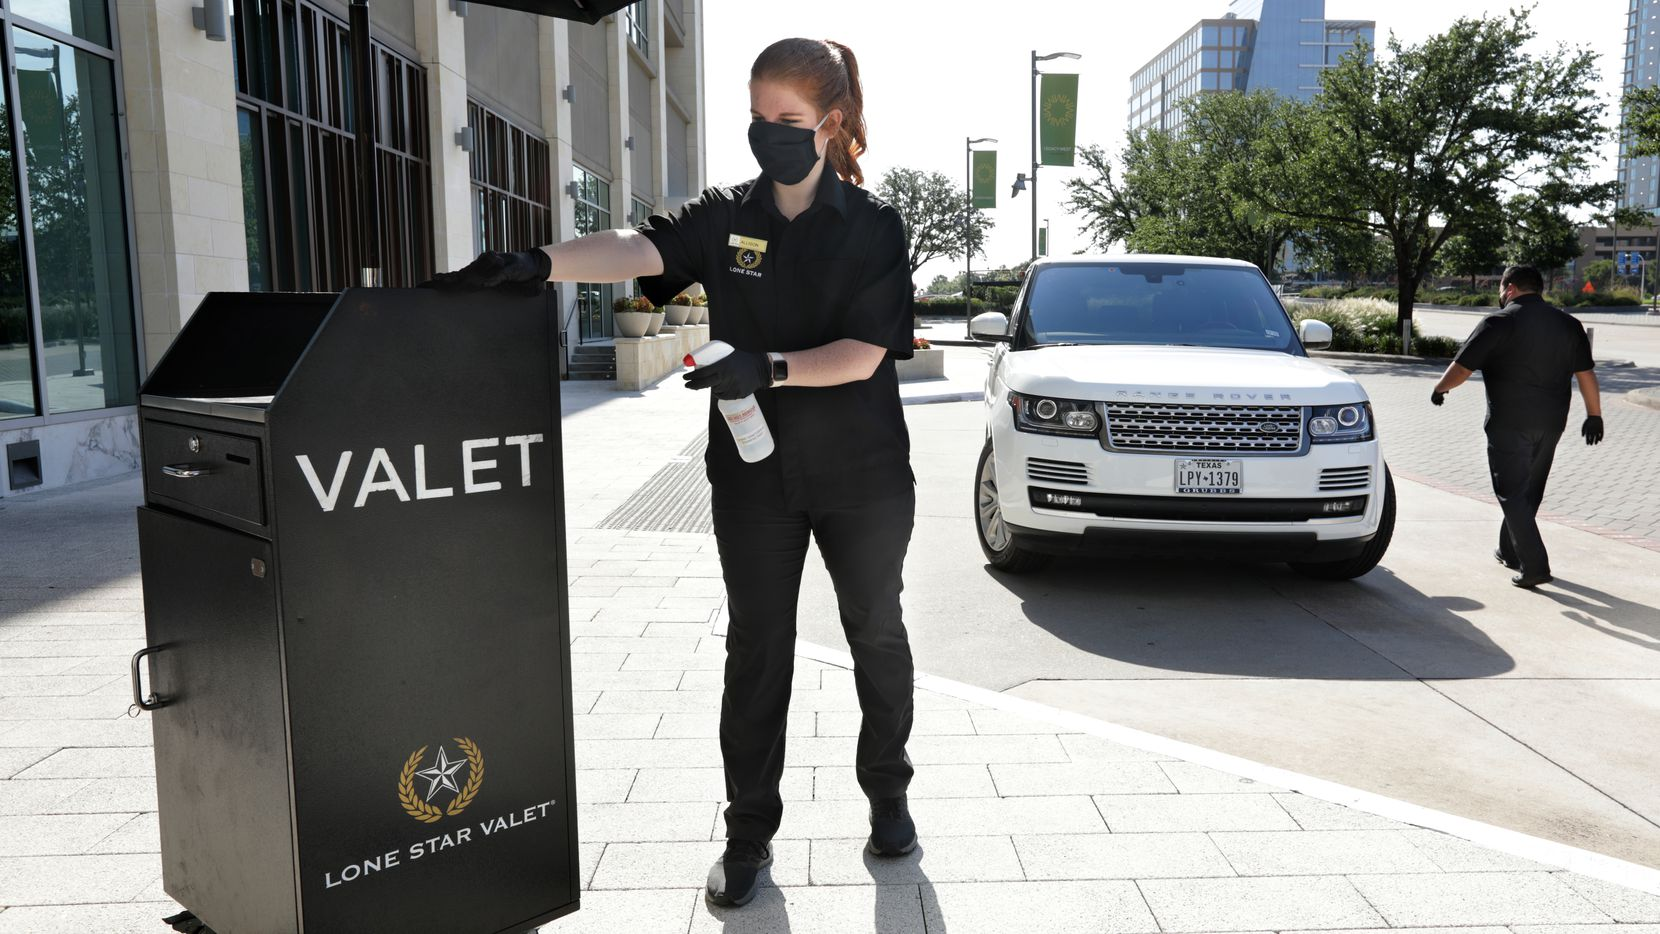 Allison Cole, left, cleans the valet booth while Gabe Munoz walks to a car at Legacy West in Plano. (Jason Janik/Special Contributor)